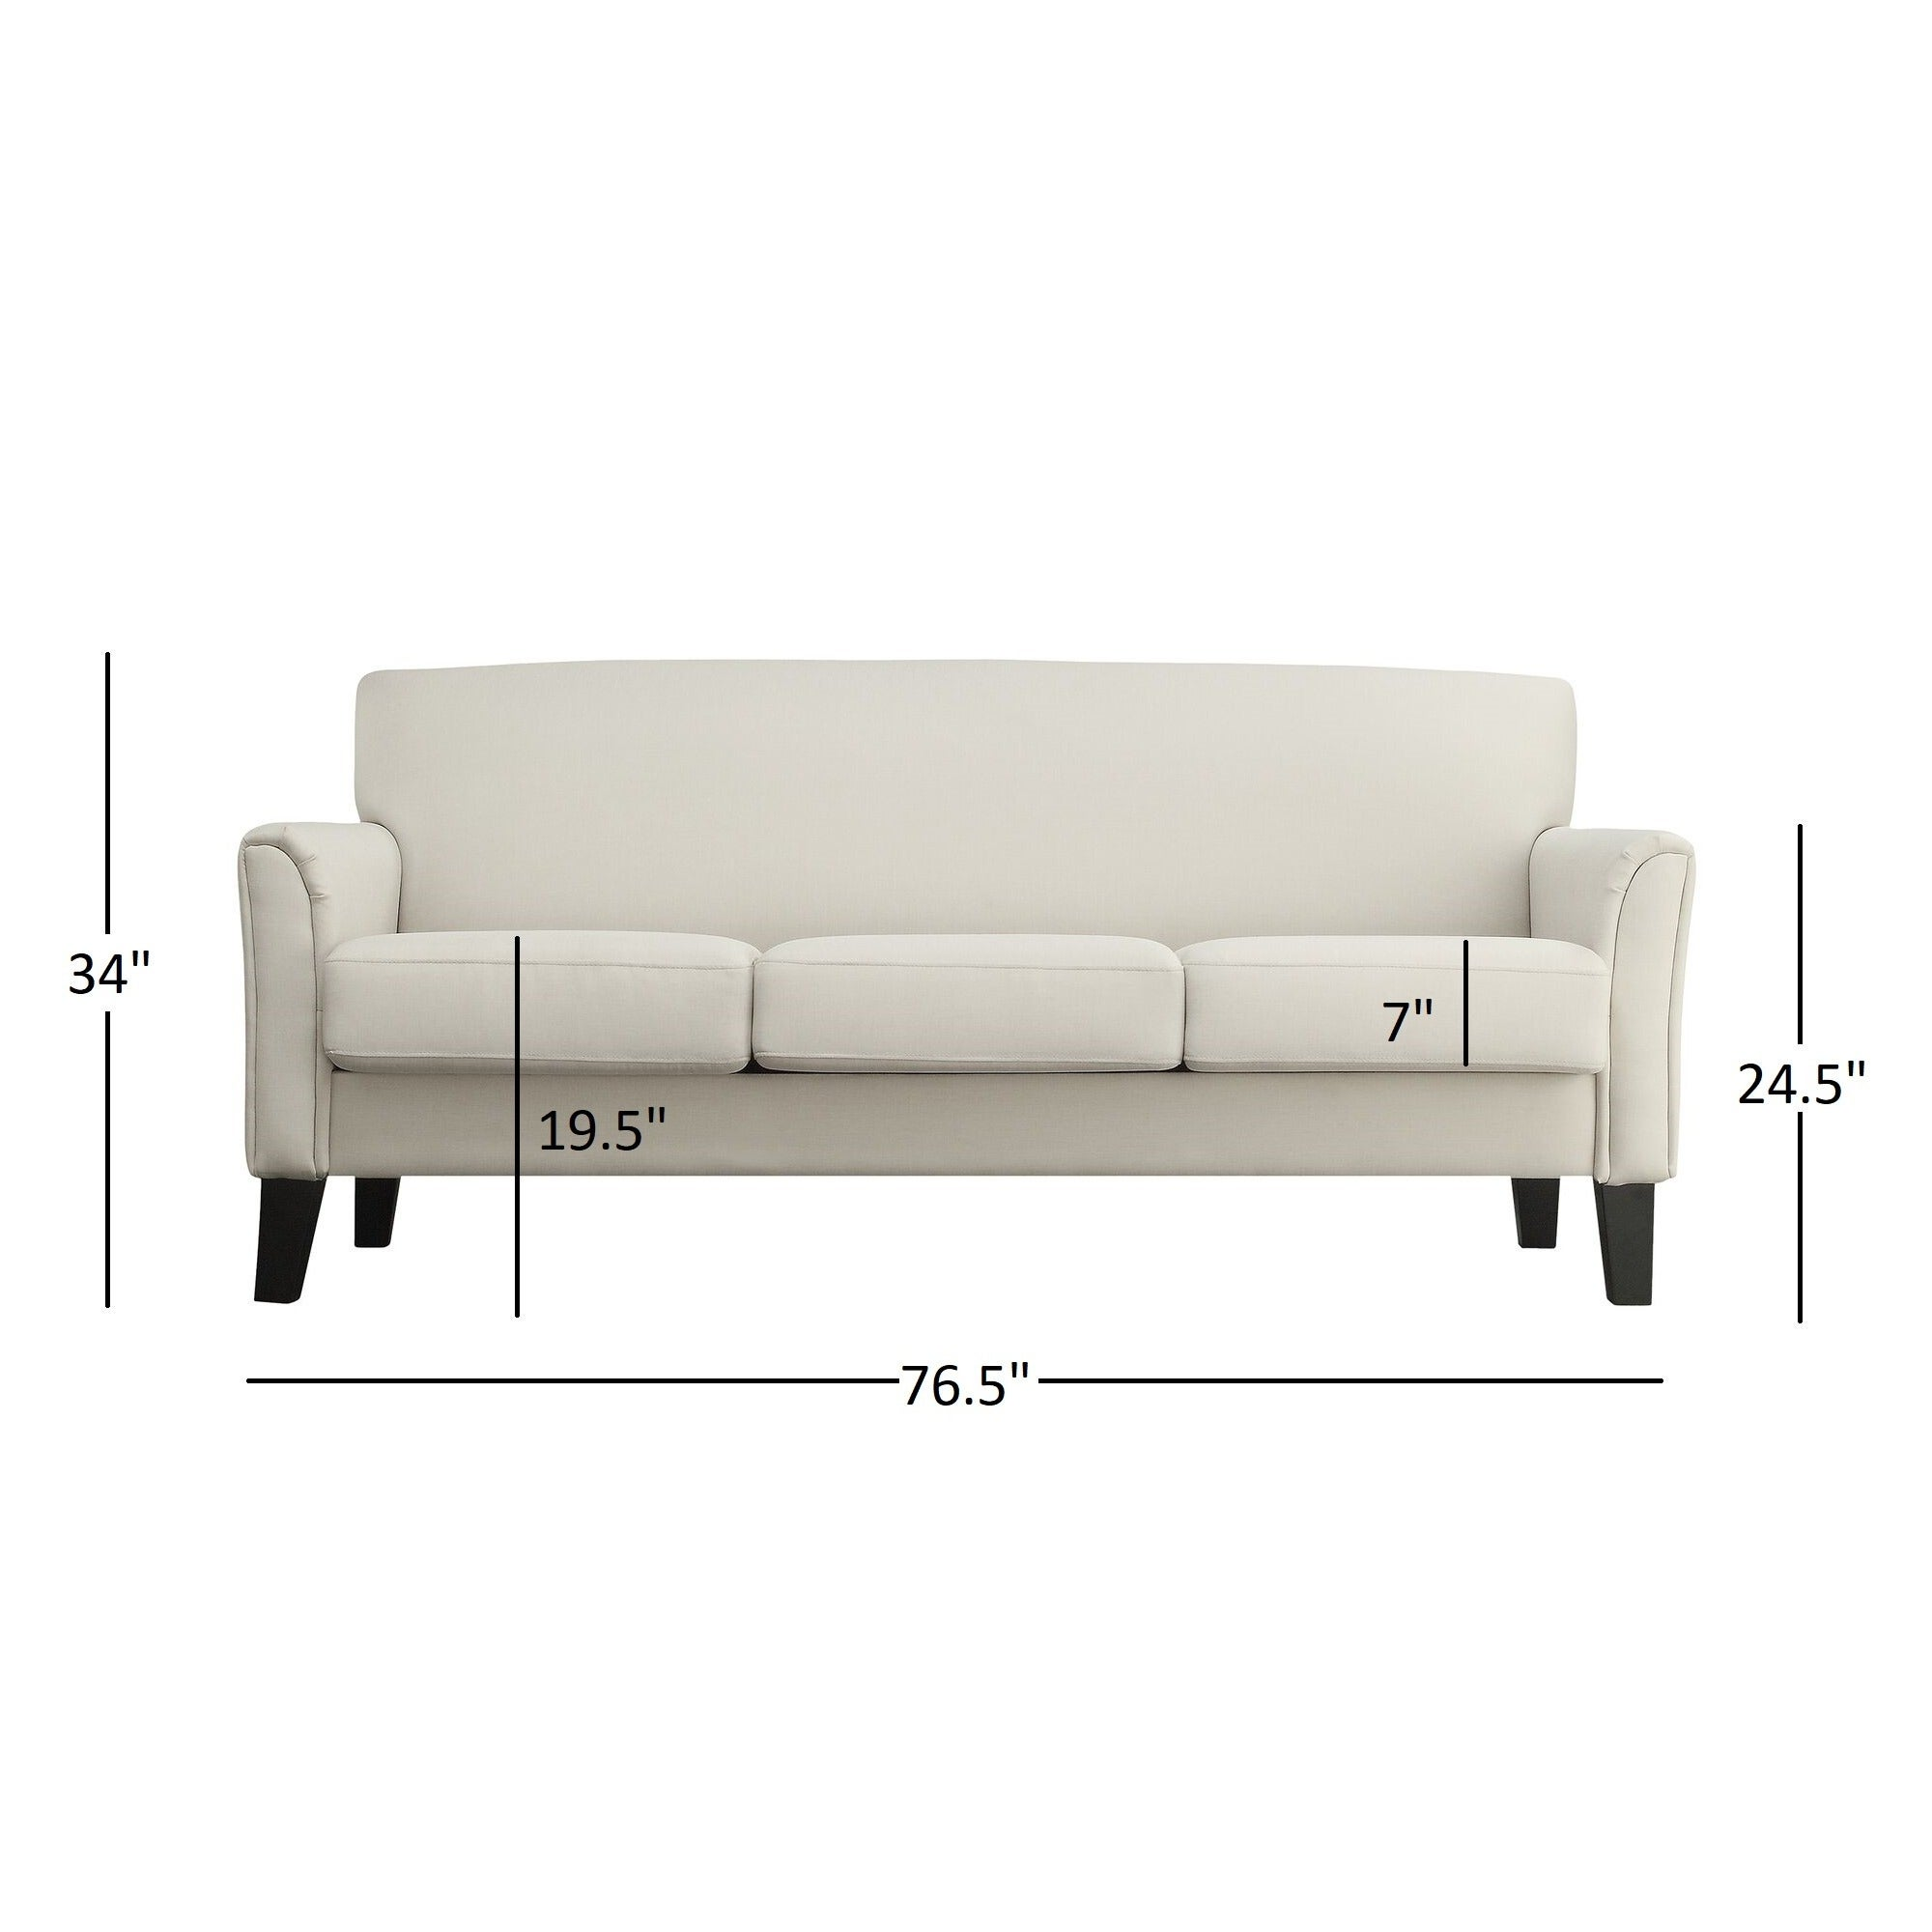 Shop Uptown Modern Sofa By INSPIRE Q Classic   On Sale   Free Shipping  Today   Overstock.com   3911915